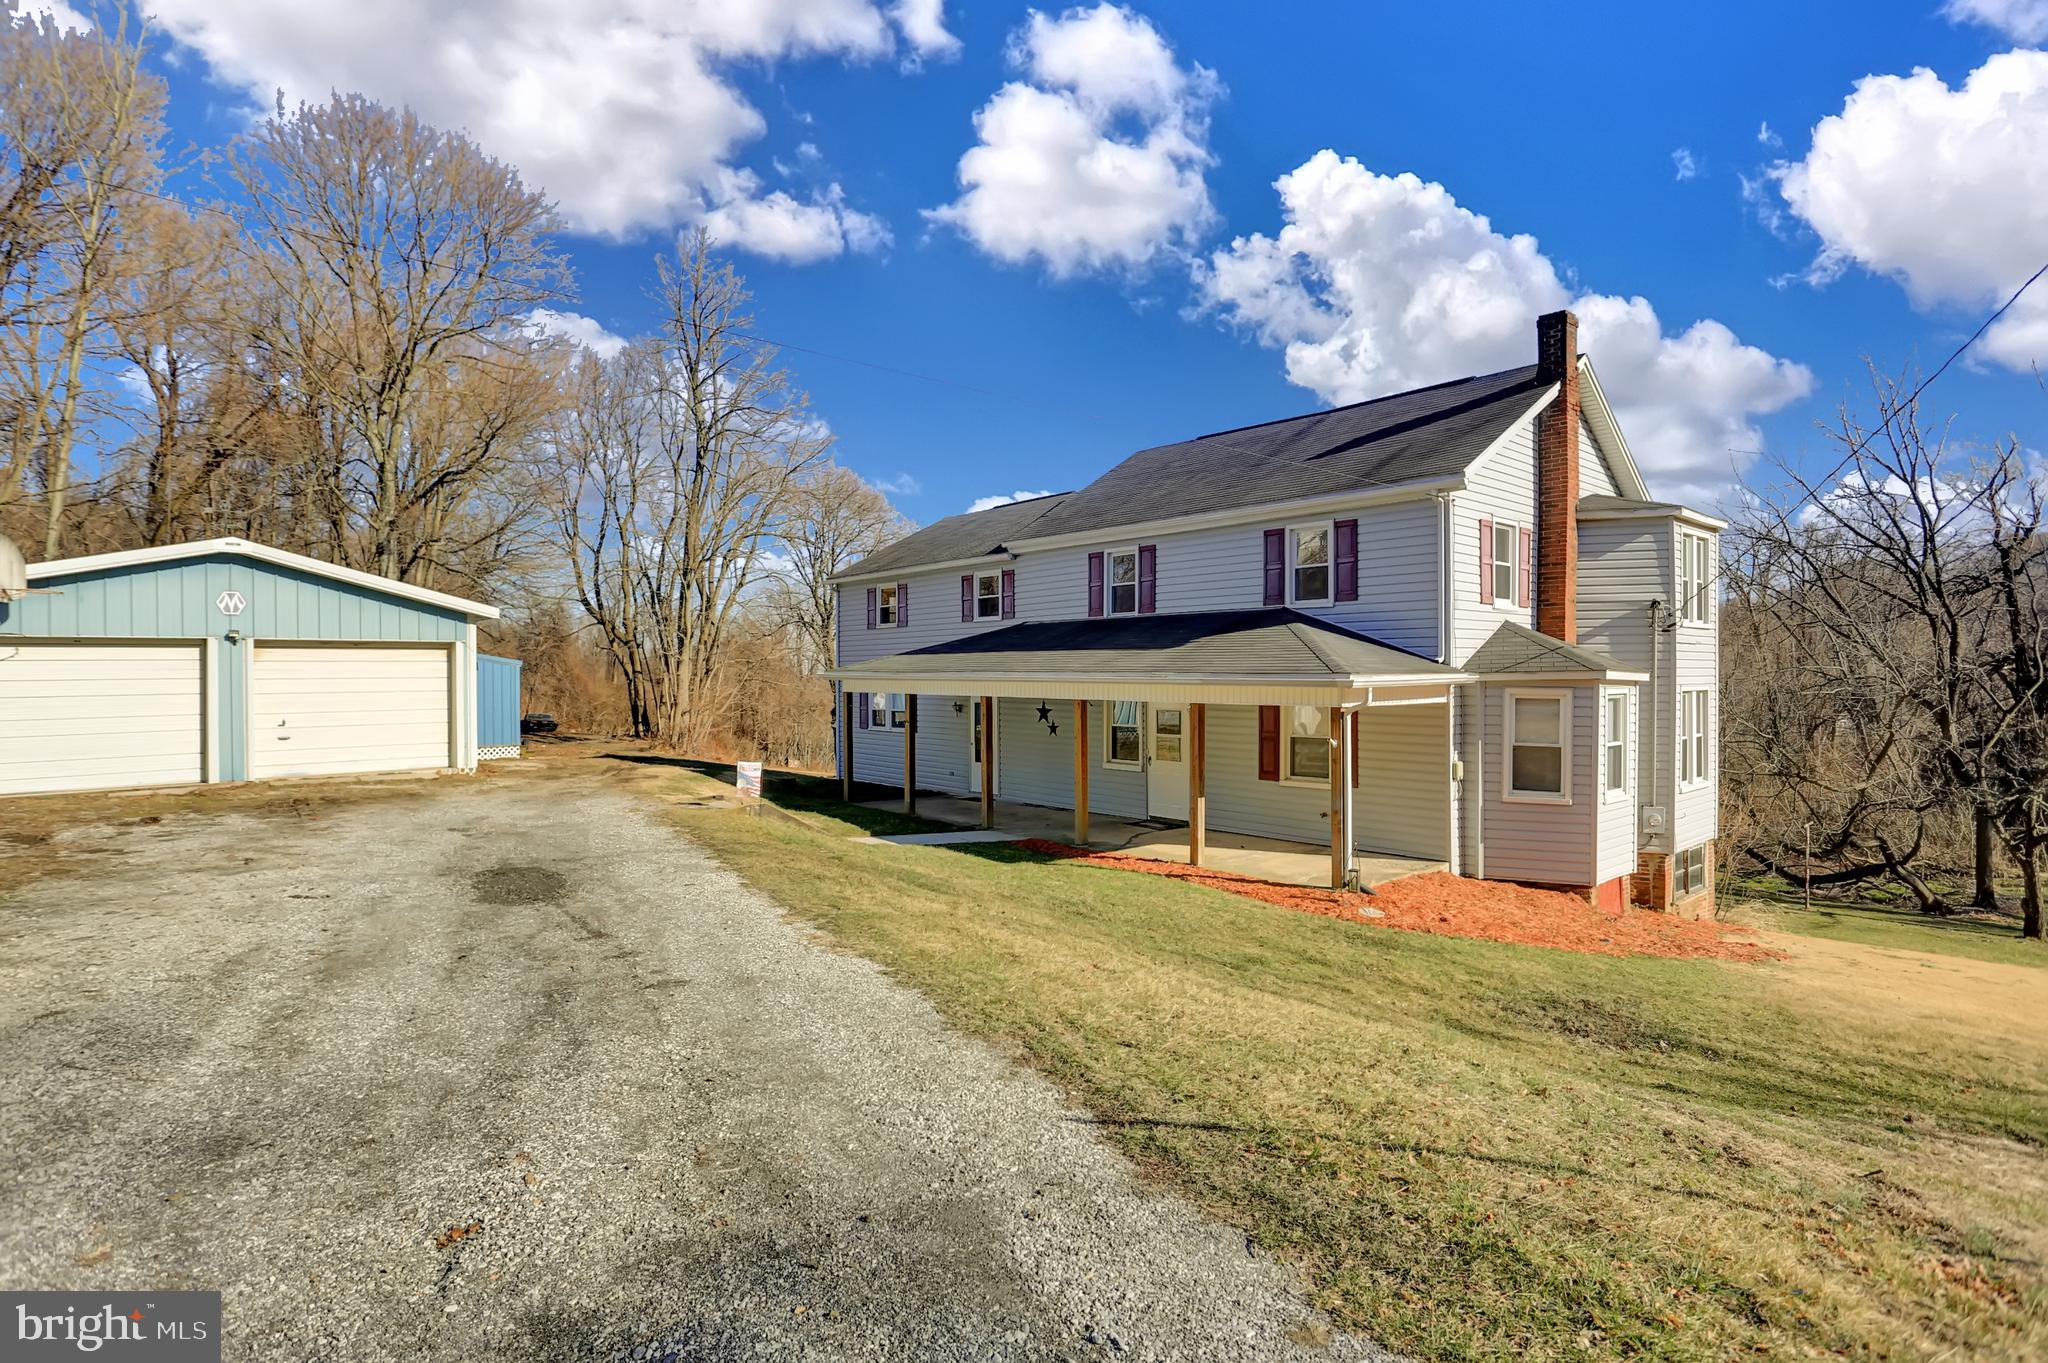 13608 MARYLAND AVENUE, BLUE RIDGE SUMMIT, PA 17214